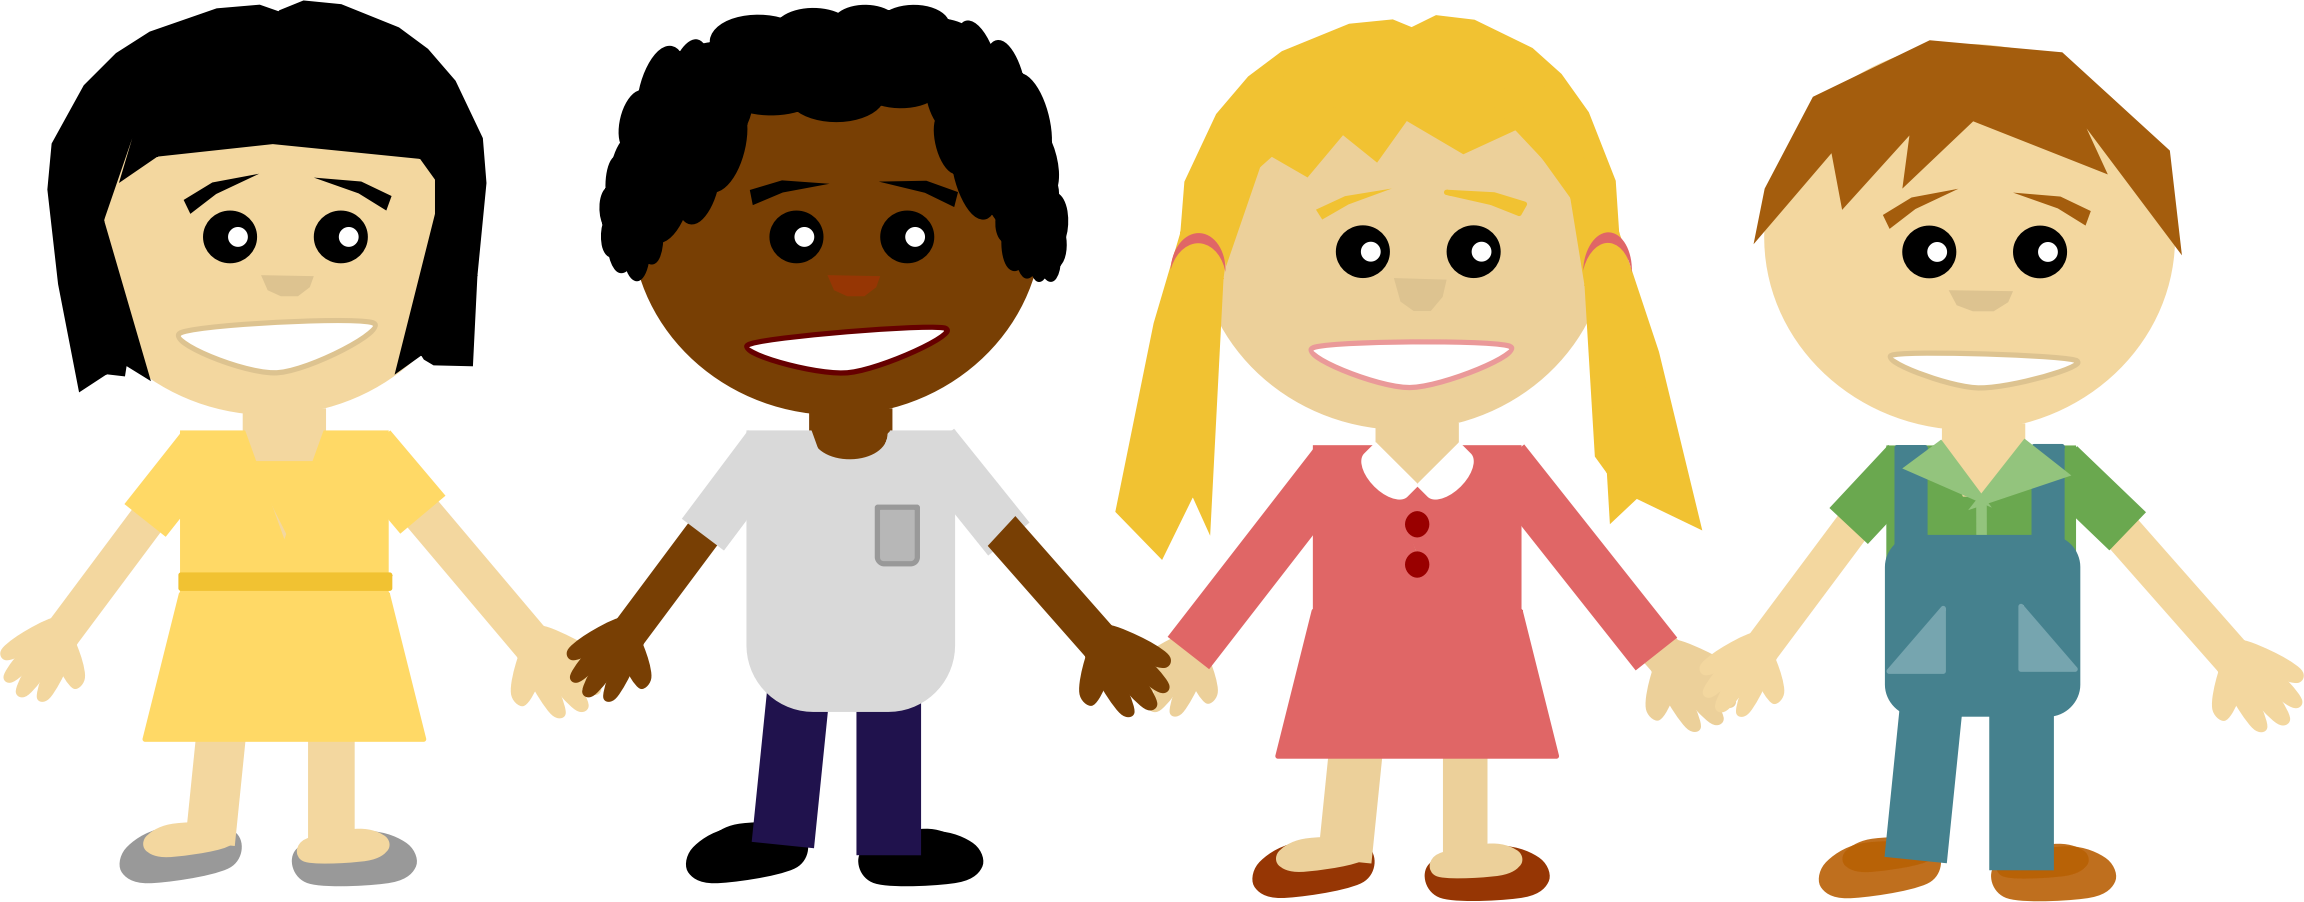 kids holding hands png